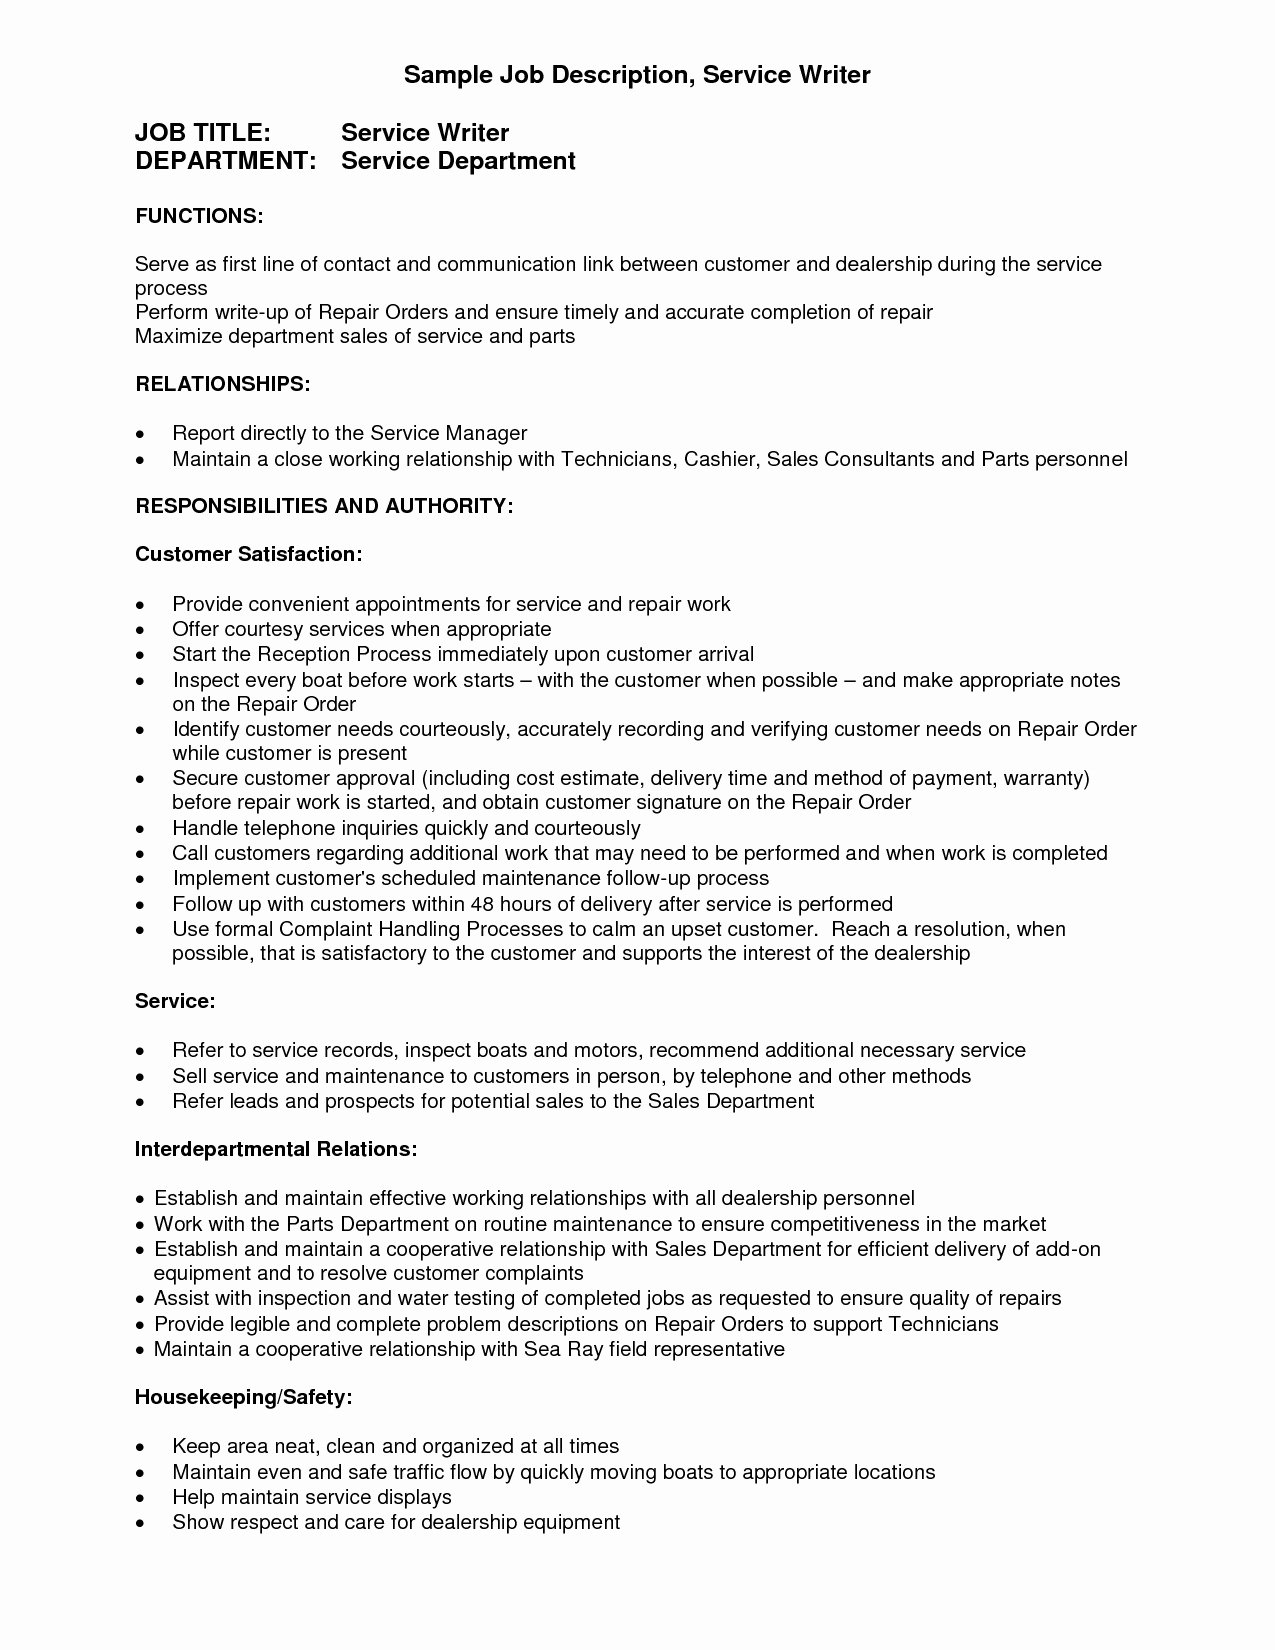 Medical Writer Resume Resume Ideas